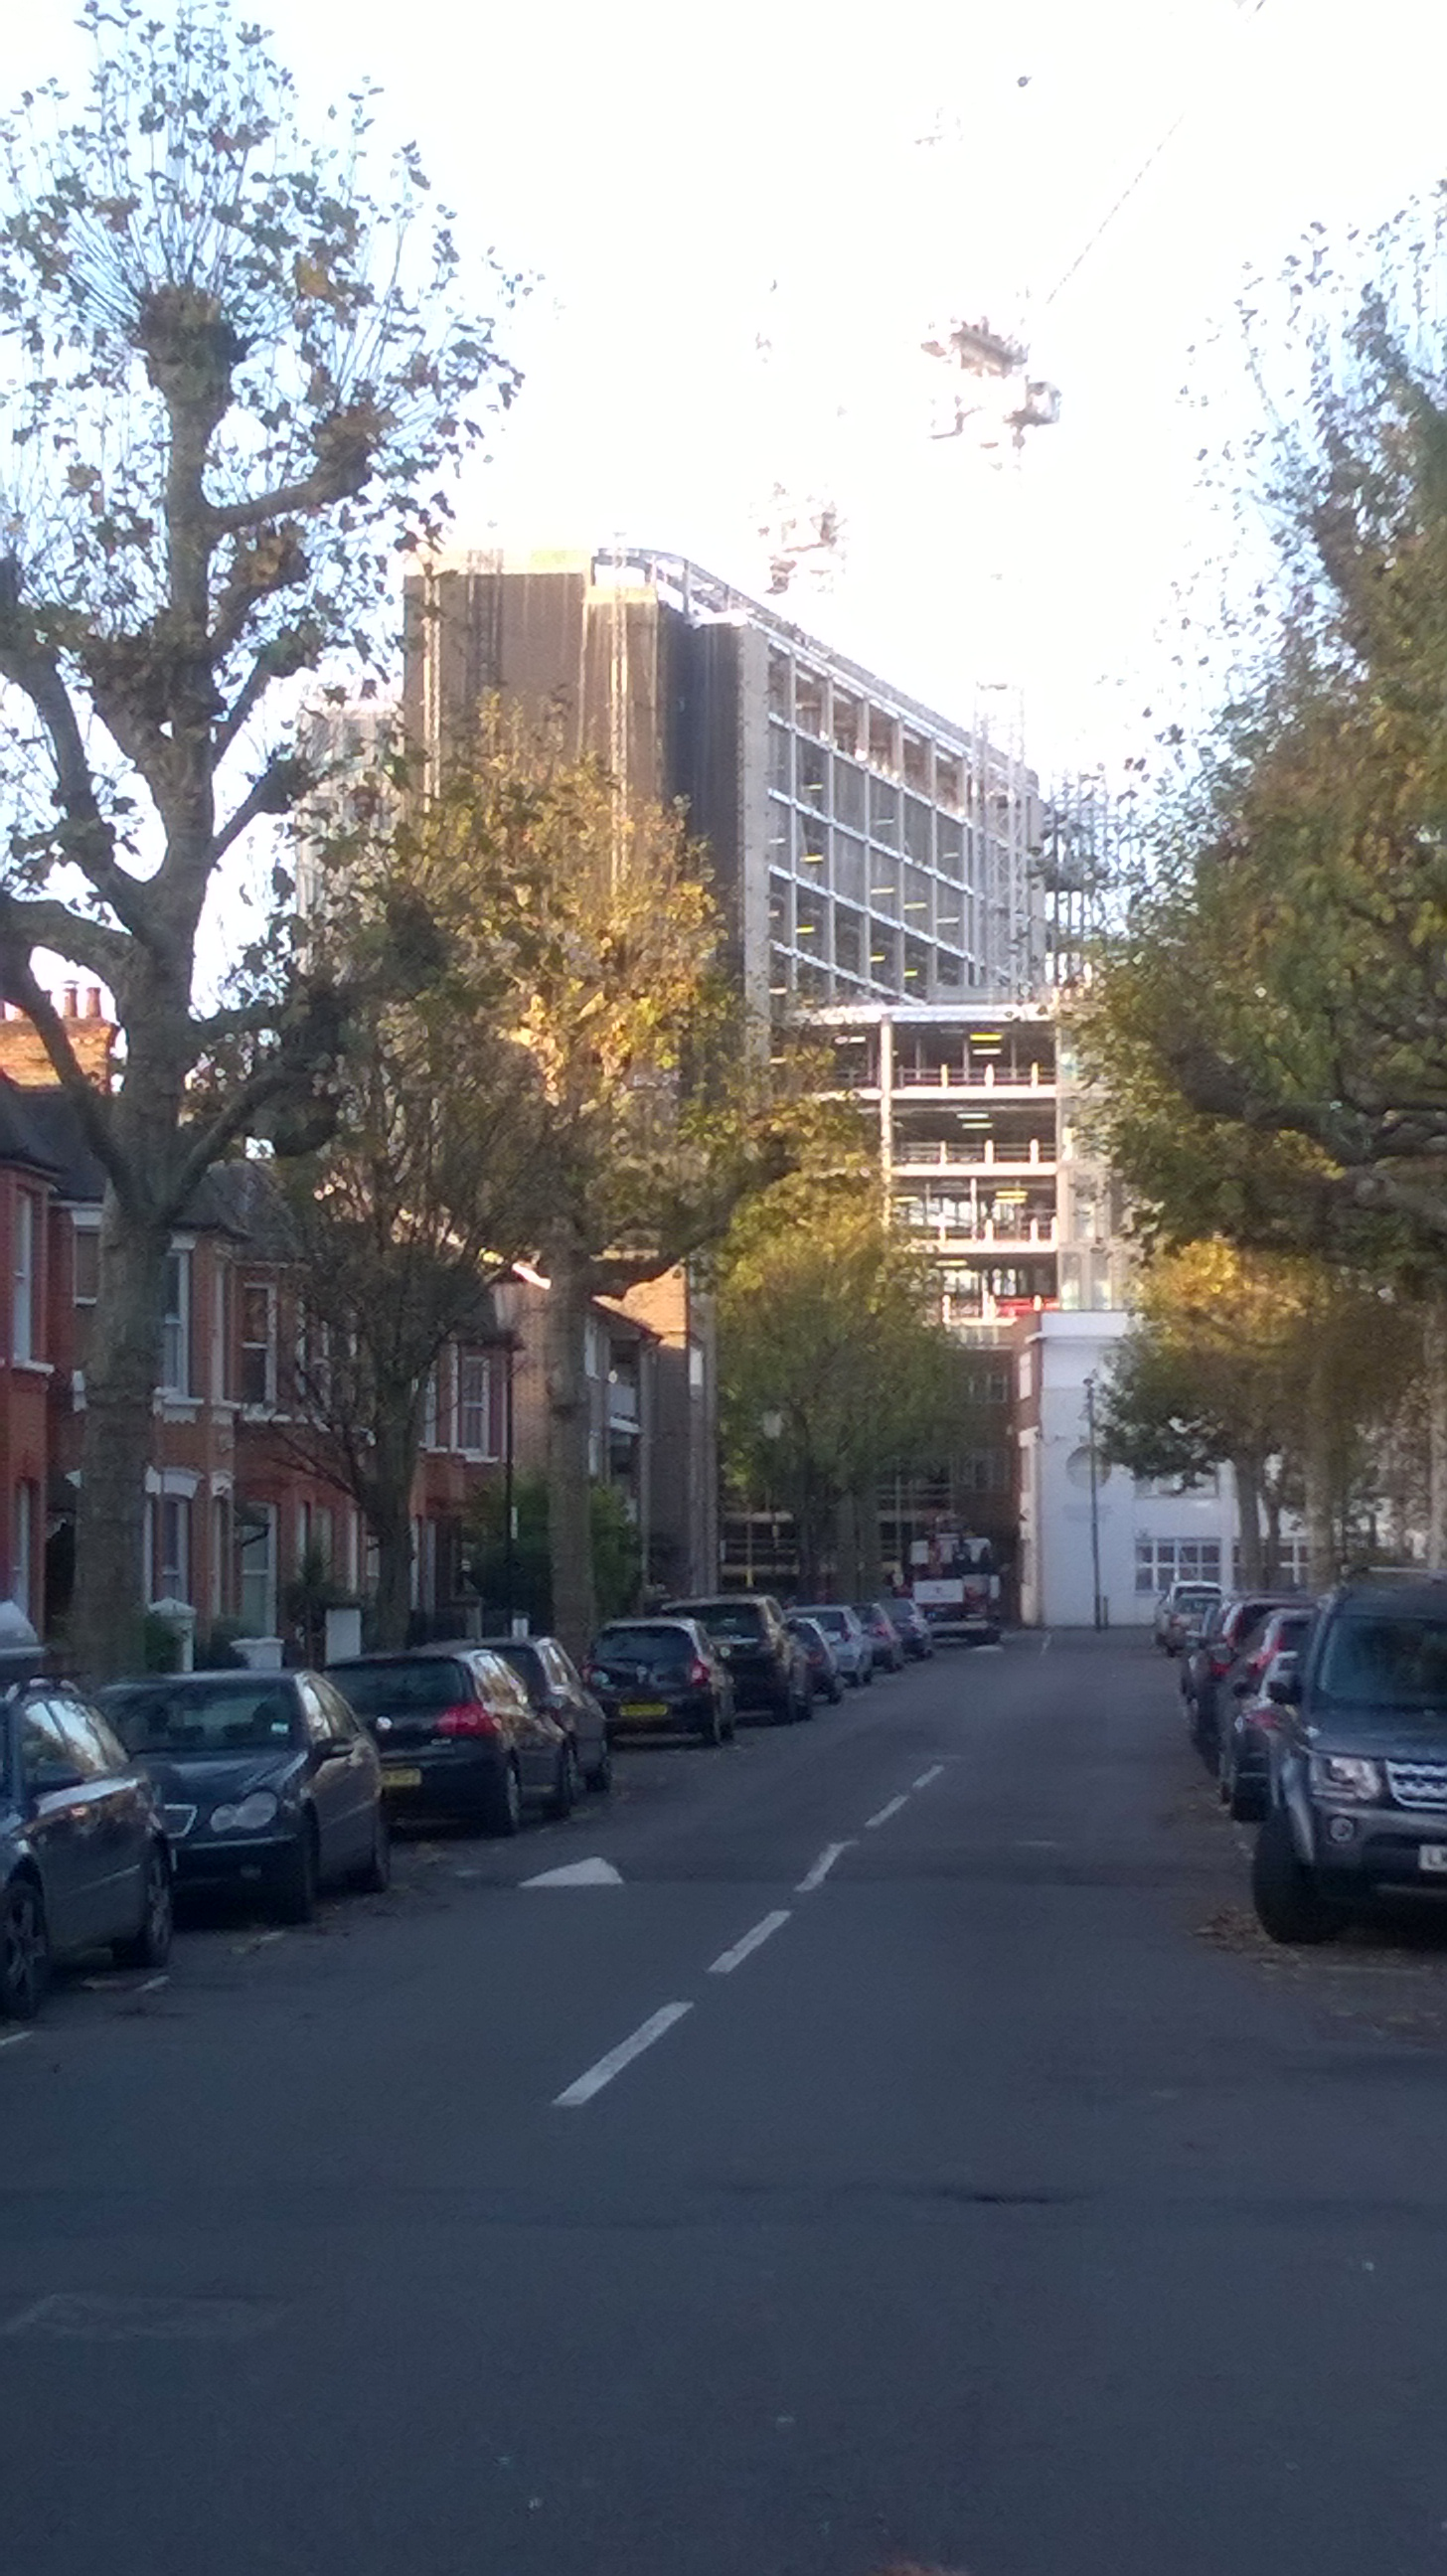 Imperial West - view from Oxford Gardens November 2015